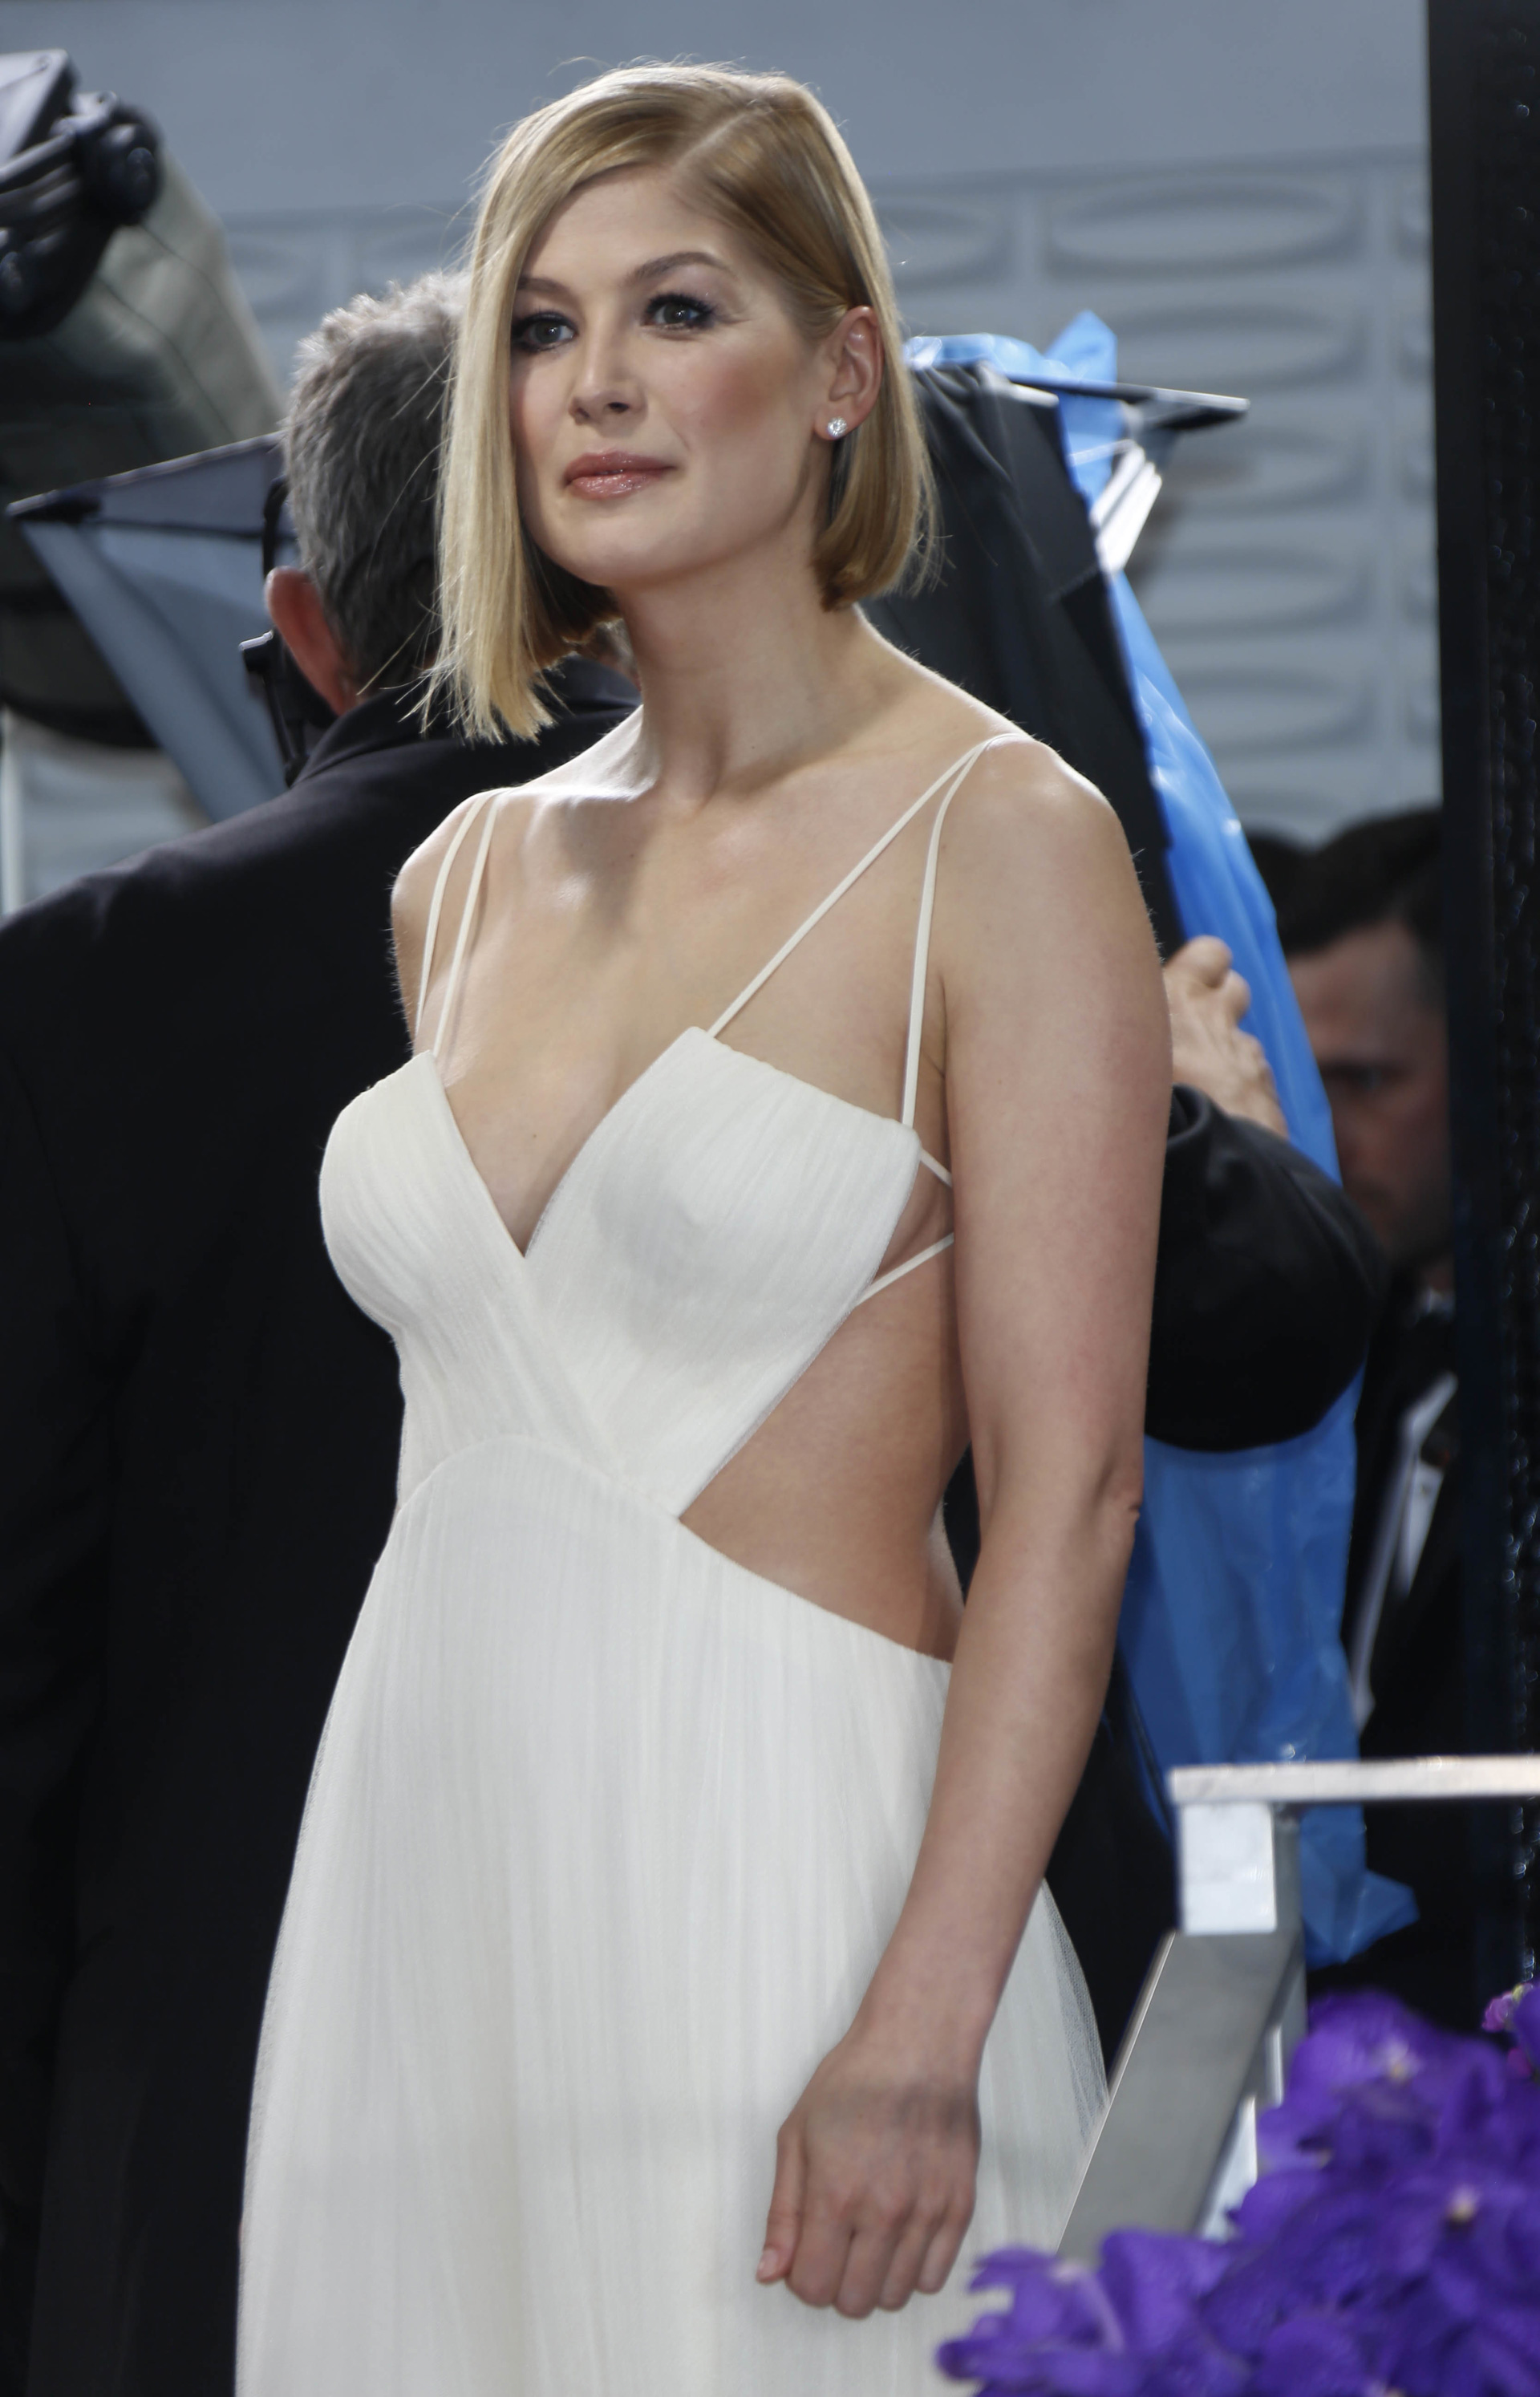 rosamund pike in panty